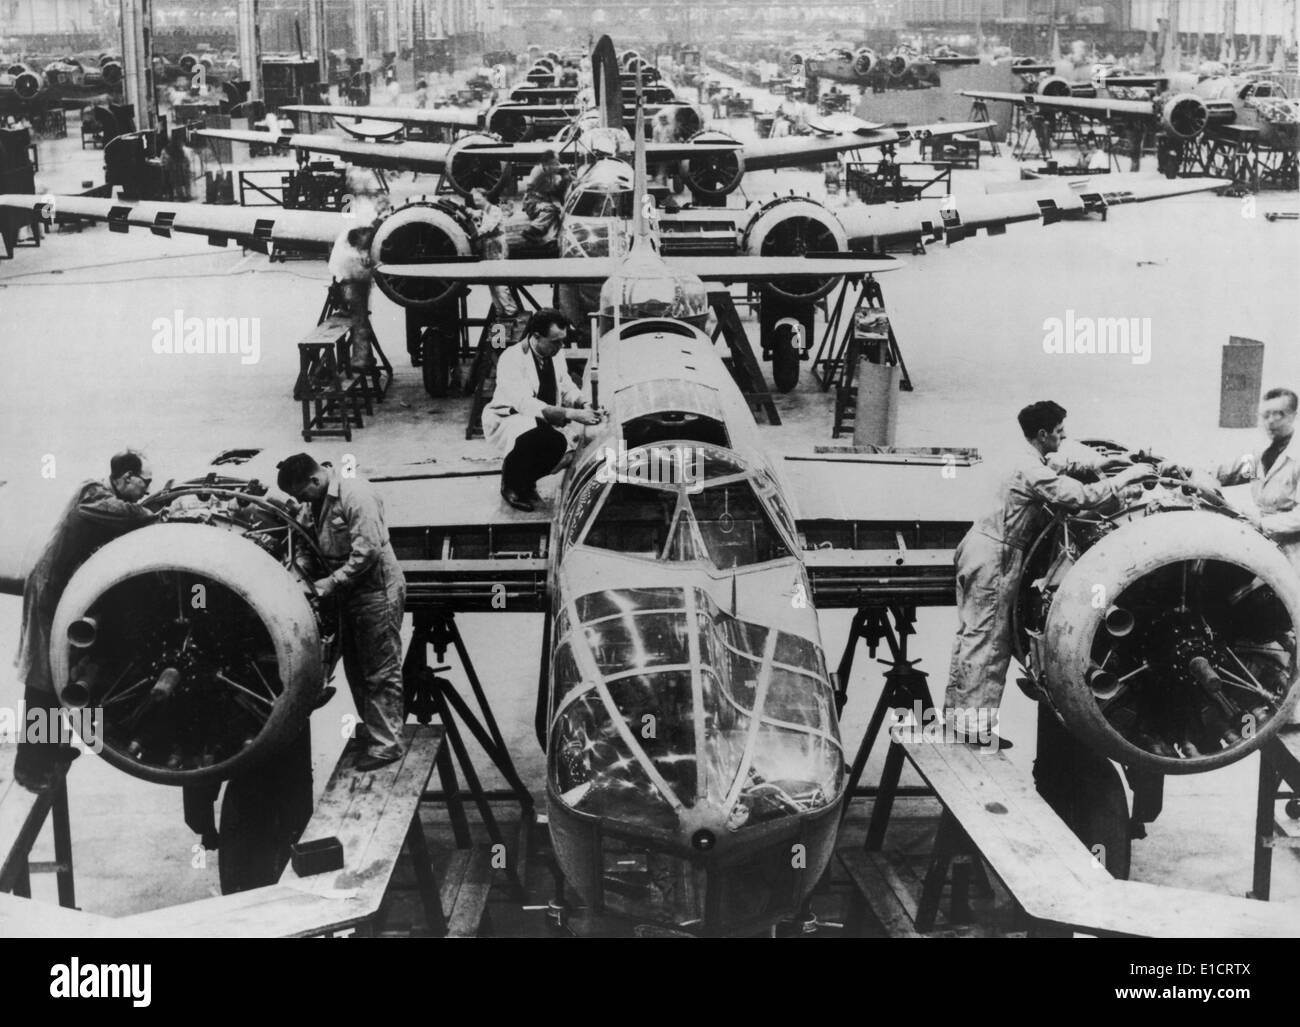 Great Britain manufacturing Blenheim bombers at the beginning of ...